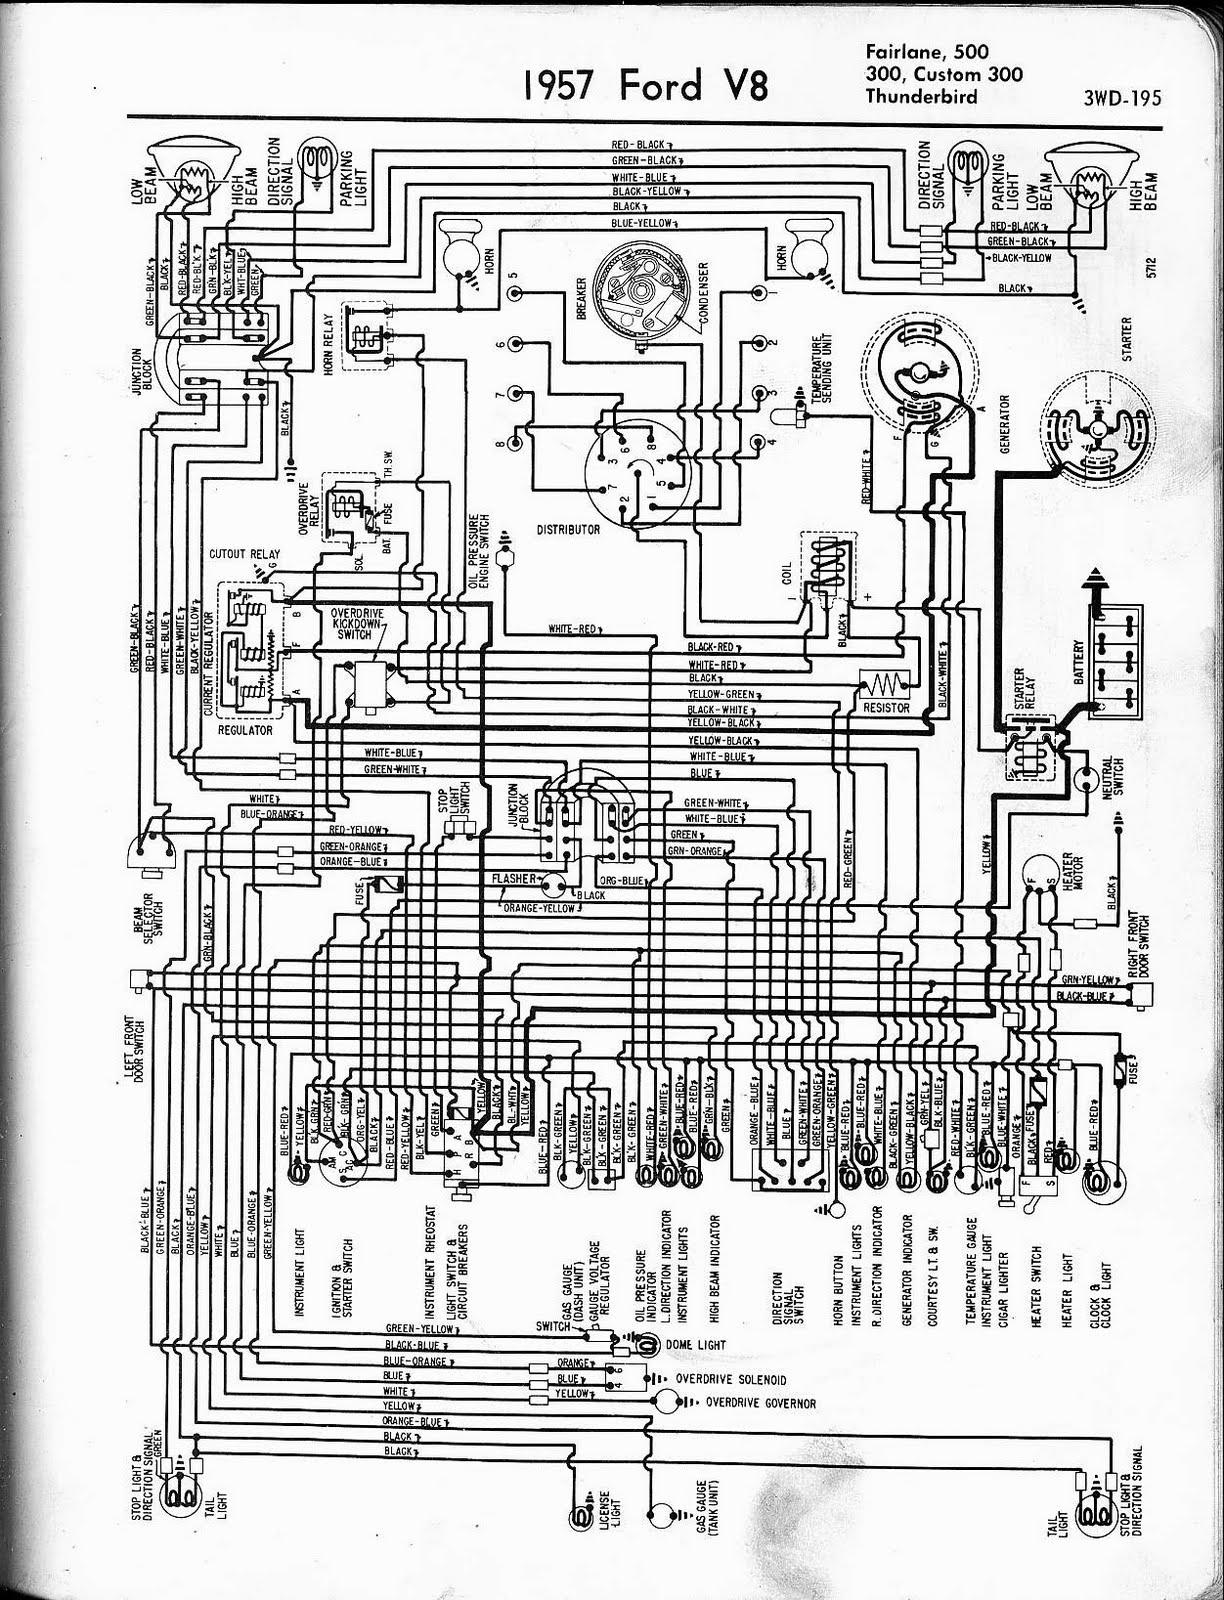 hight resolution of free auto wiring diagram 1957 ford v8 fairlane custom300 crown vic fuse diagram 2006 ford crown